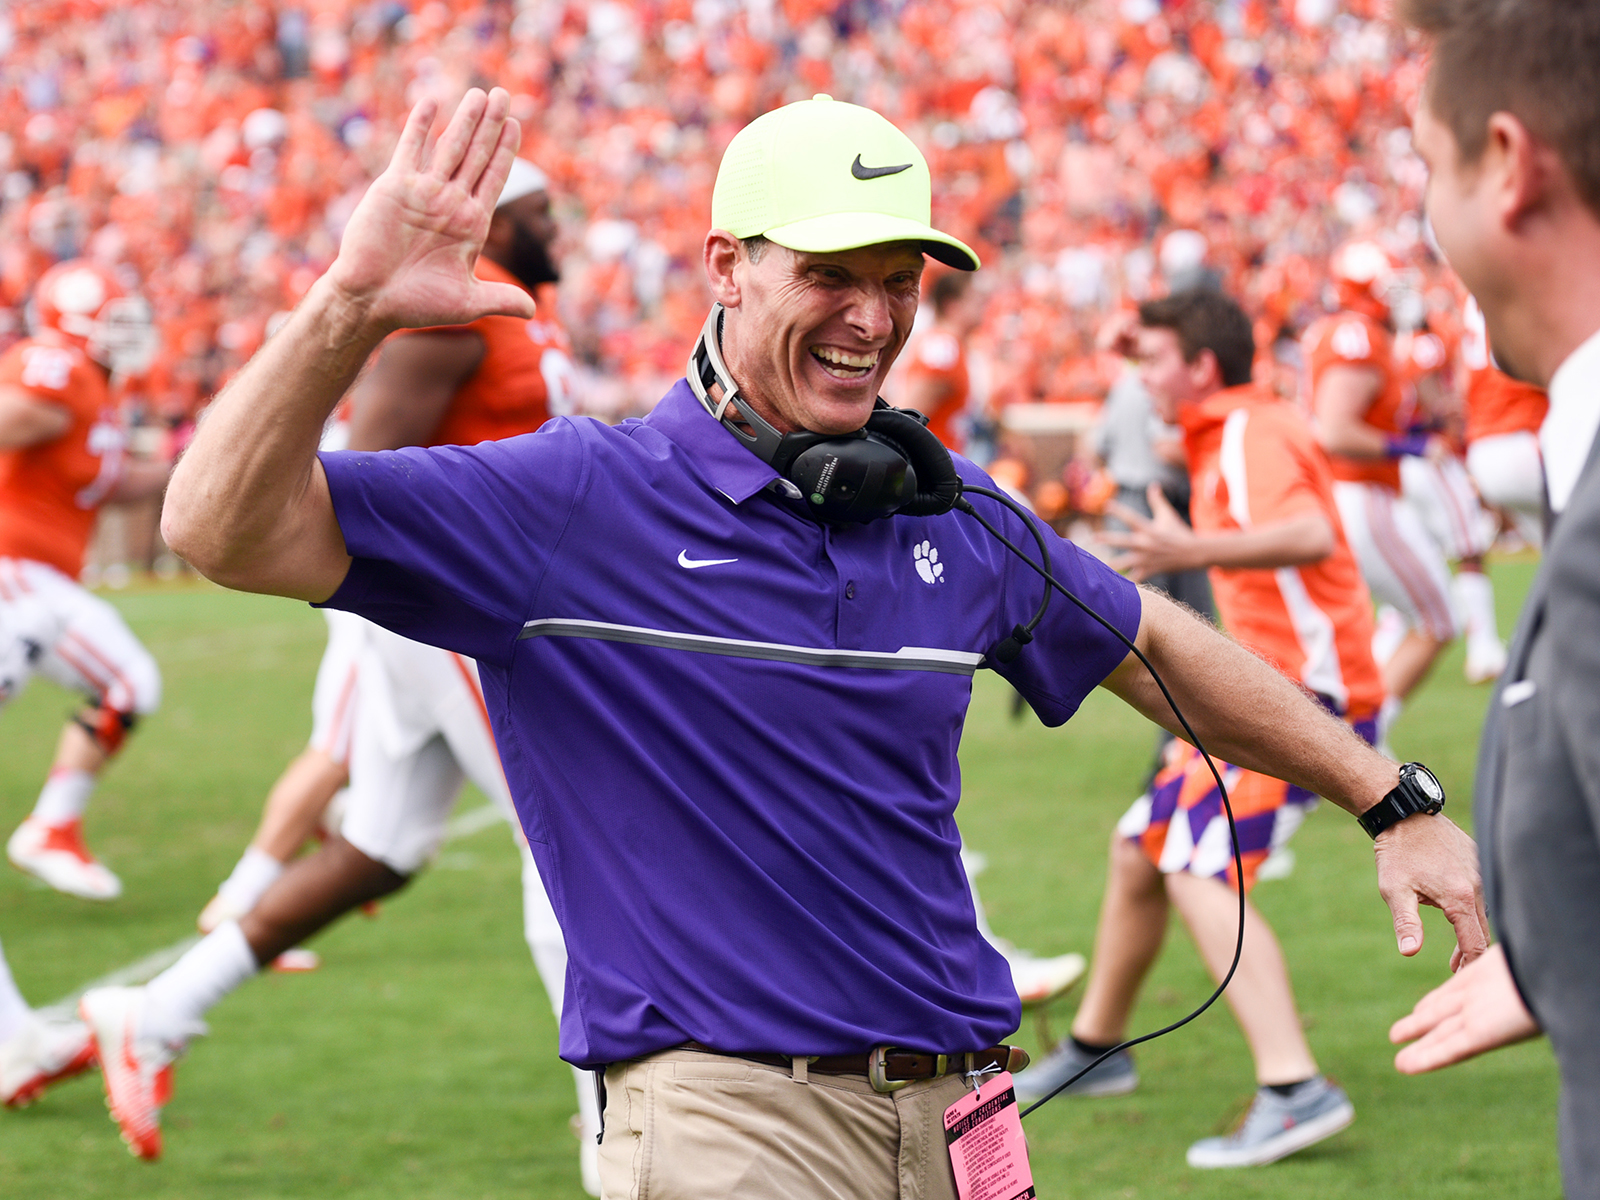 Clemson defensive coordinator Brent Venables is close friends with Texas Tech AD Kirby Hocutt.